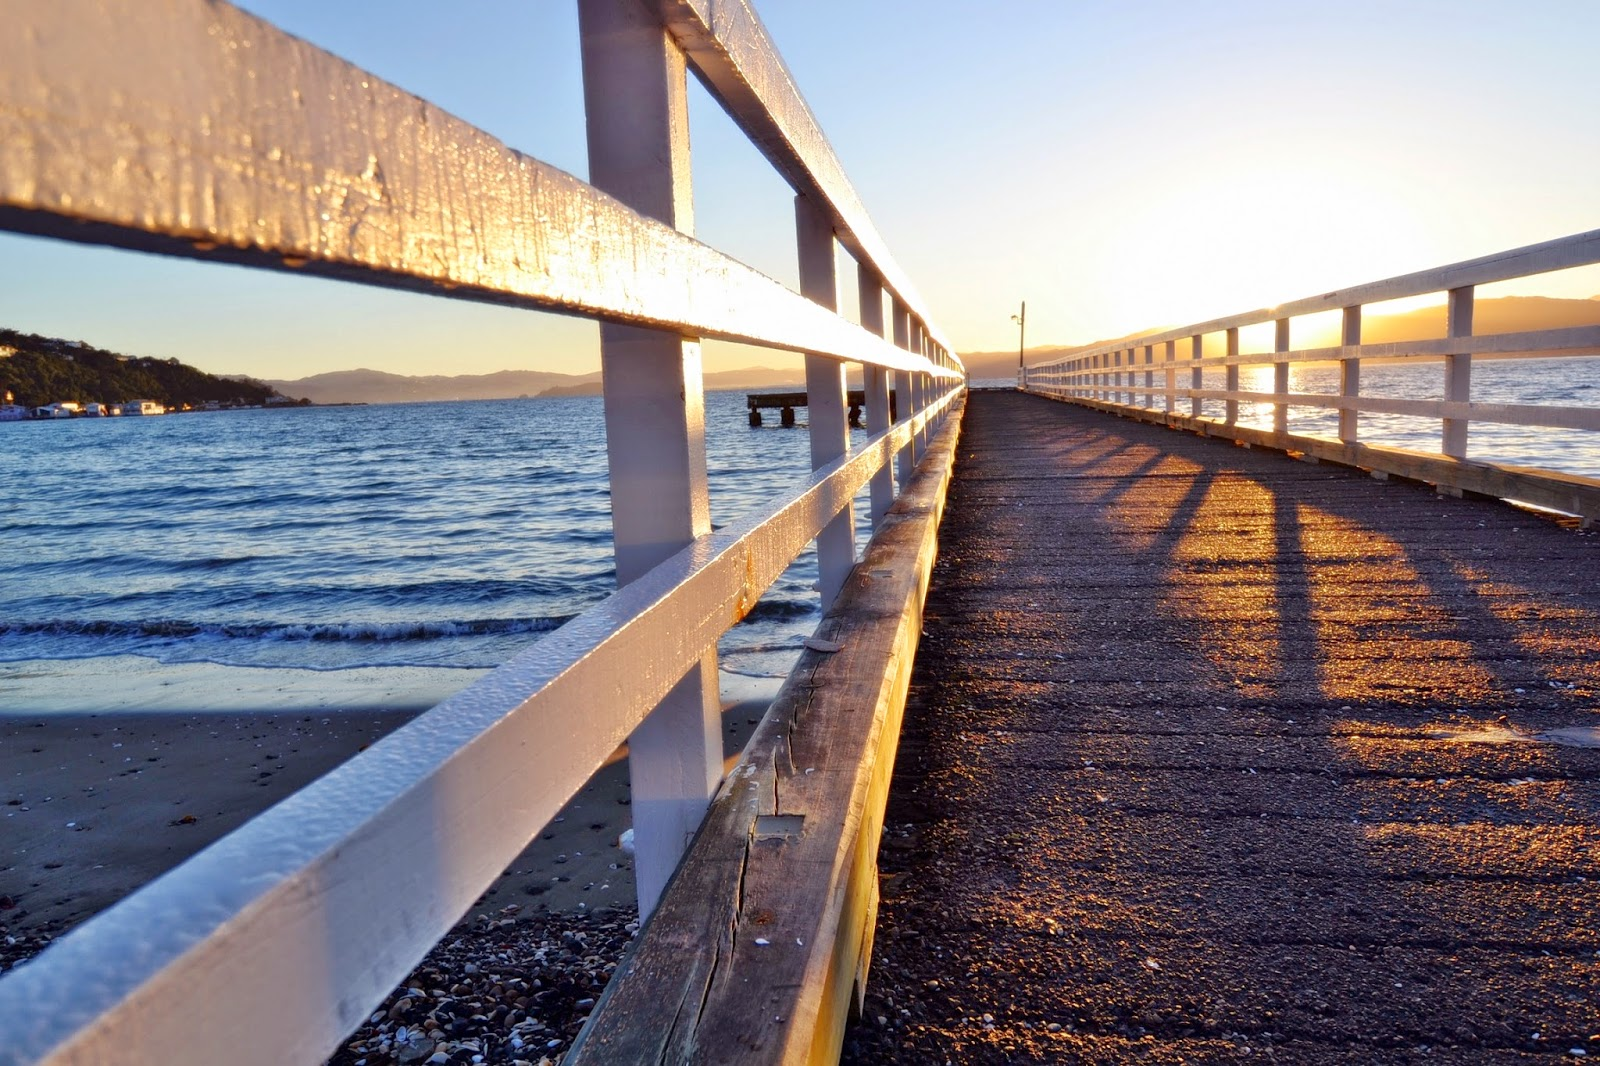 Seatoun Pier low angle